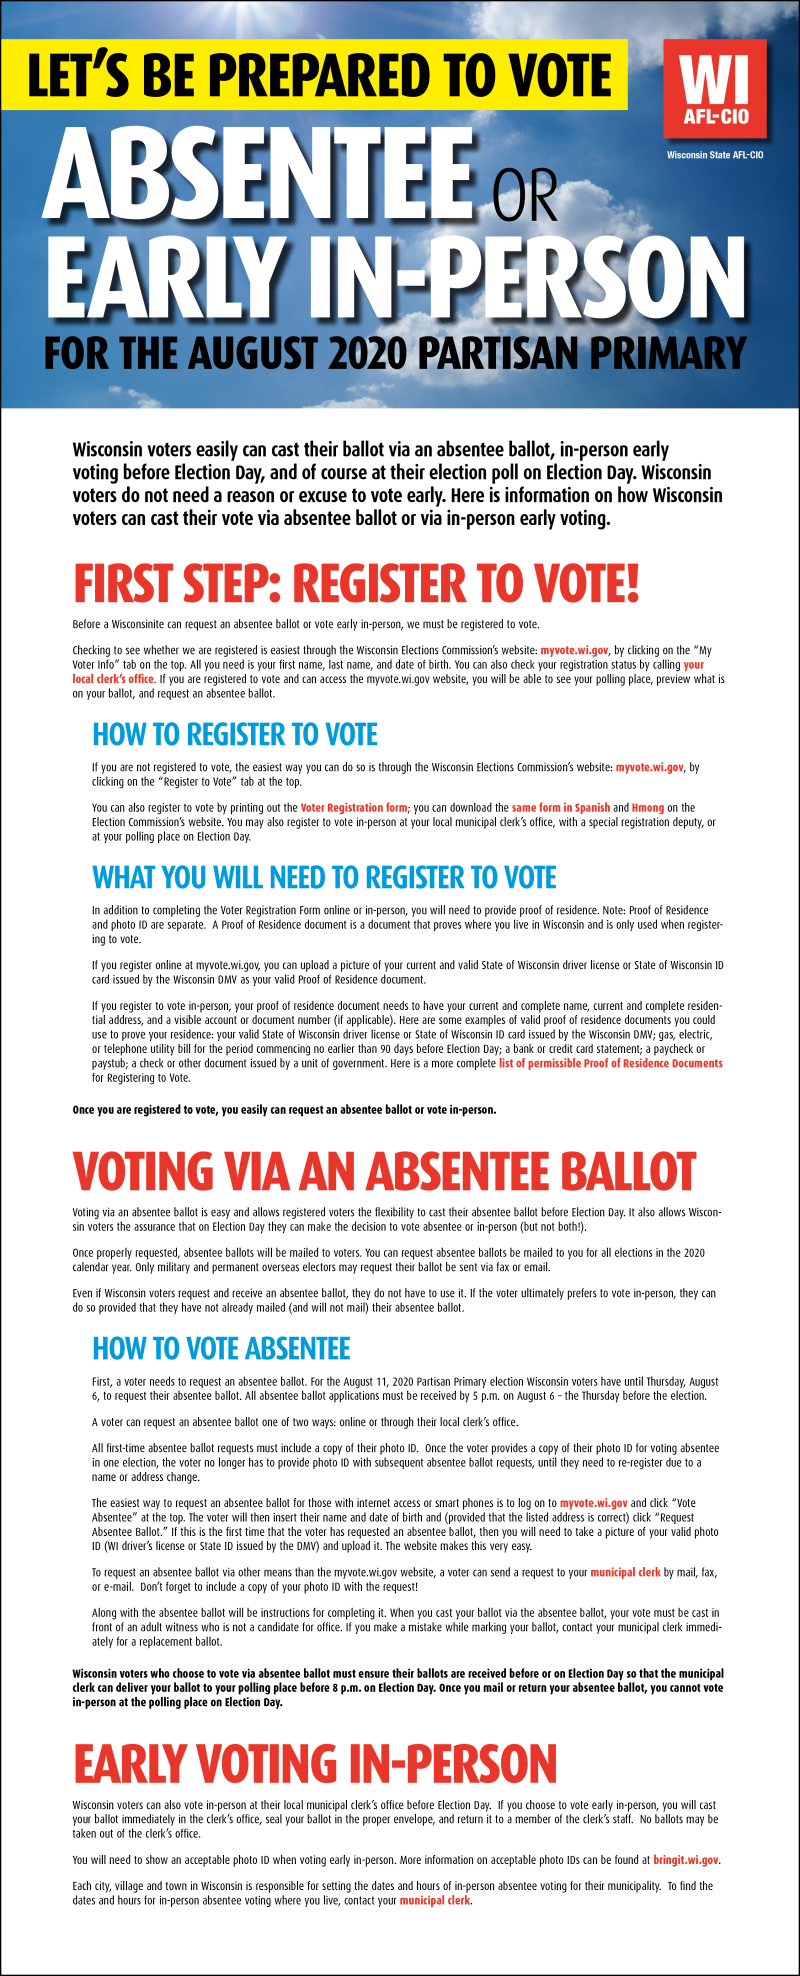 VoterGuide_August2020PNG